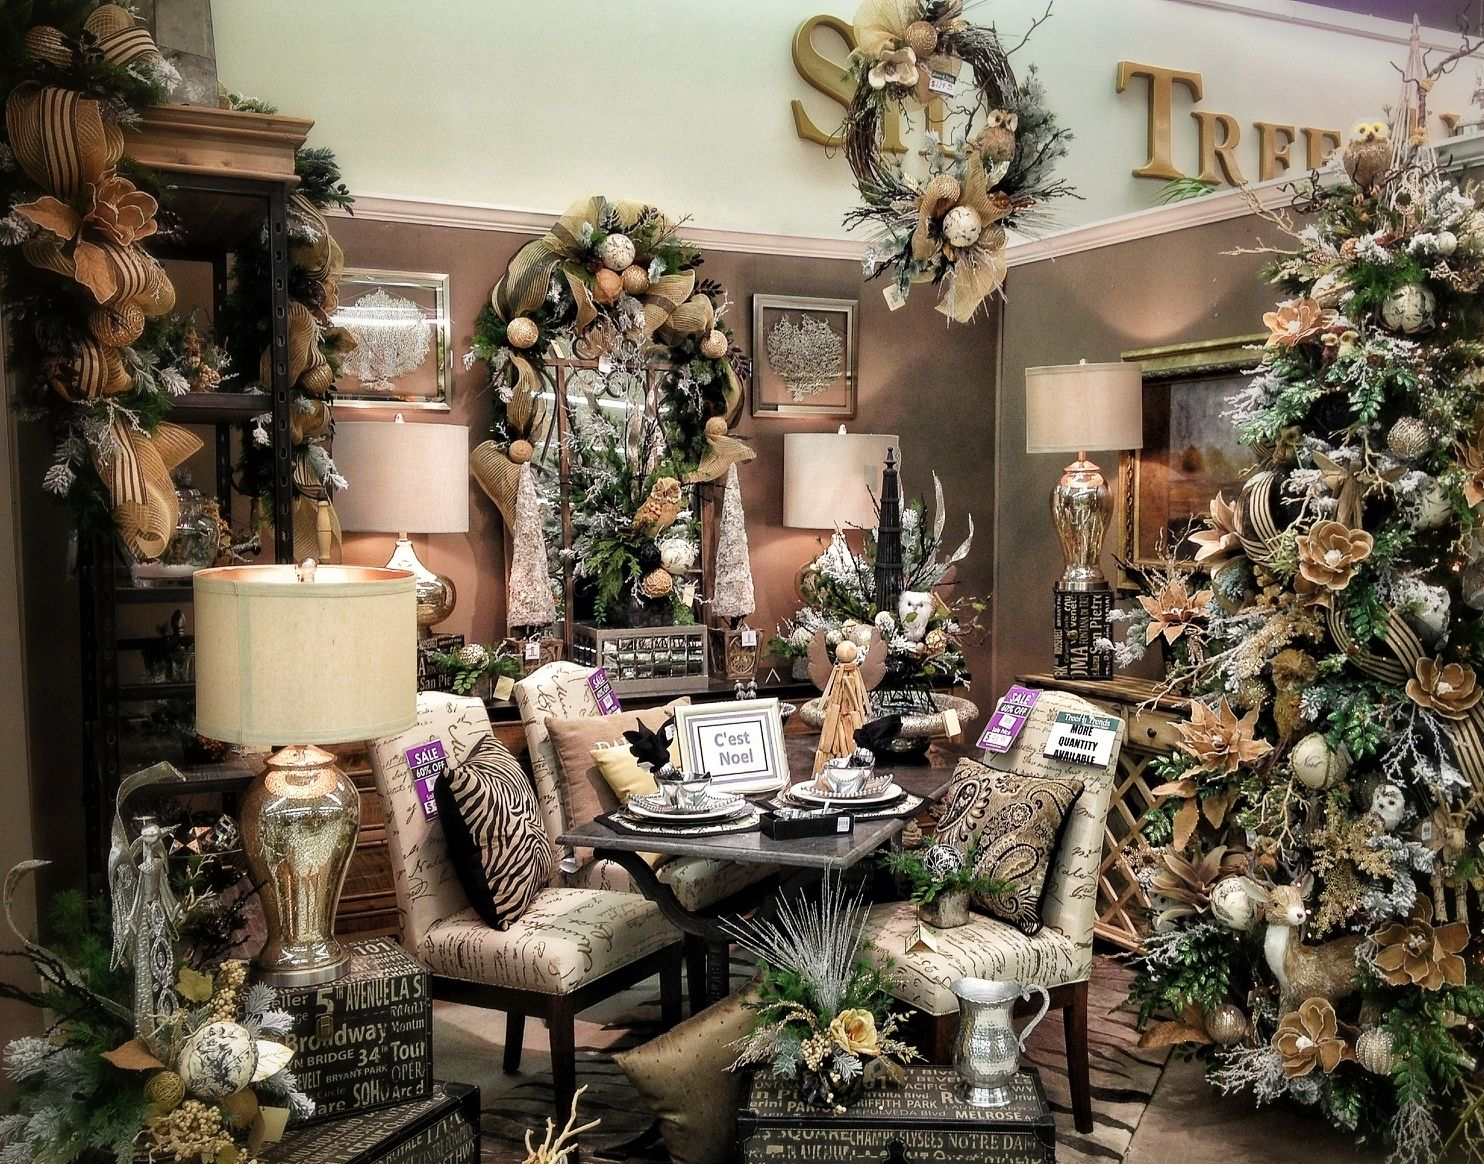 French Country Christmas Decorating Ideas: French Country Christmas Chic With Splashes